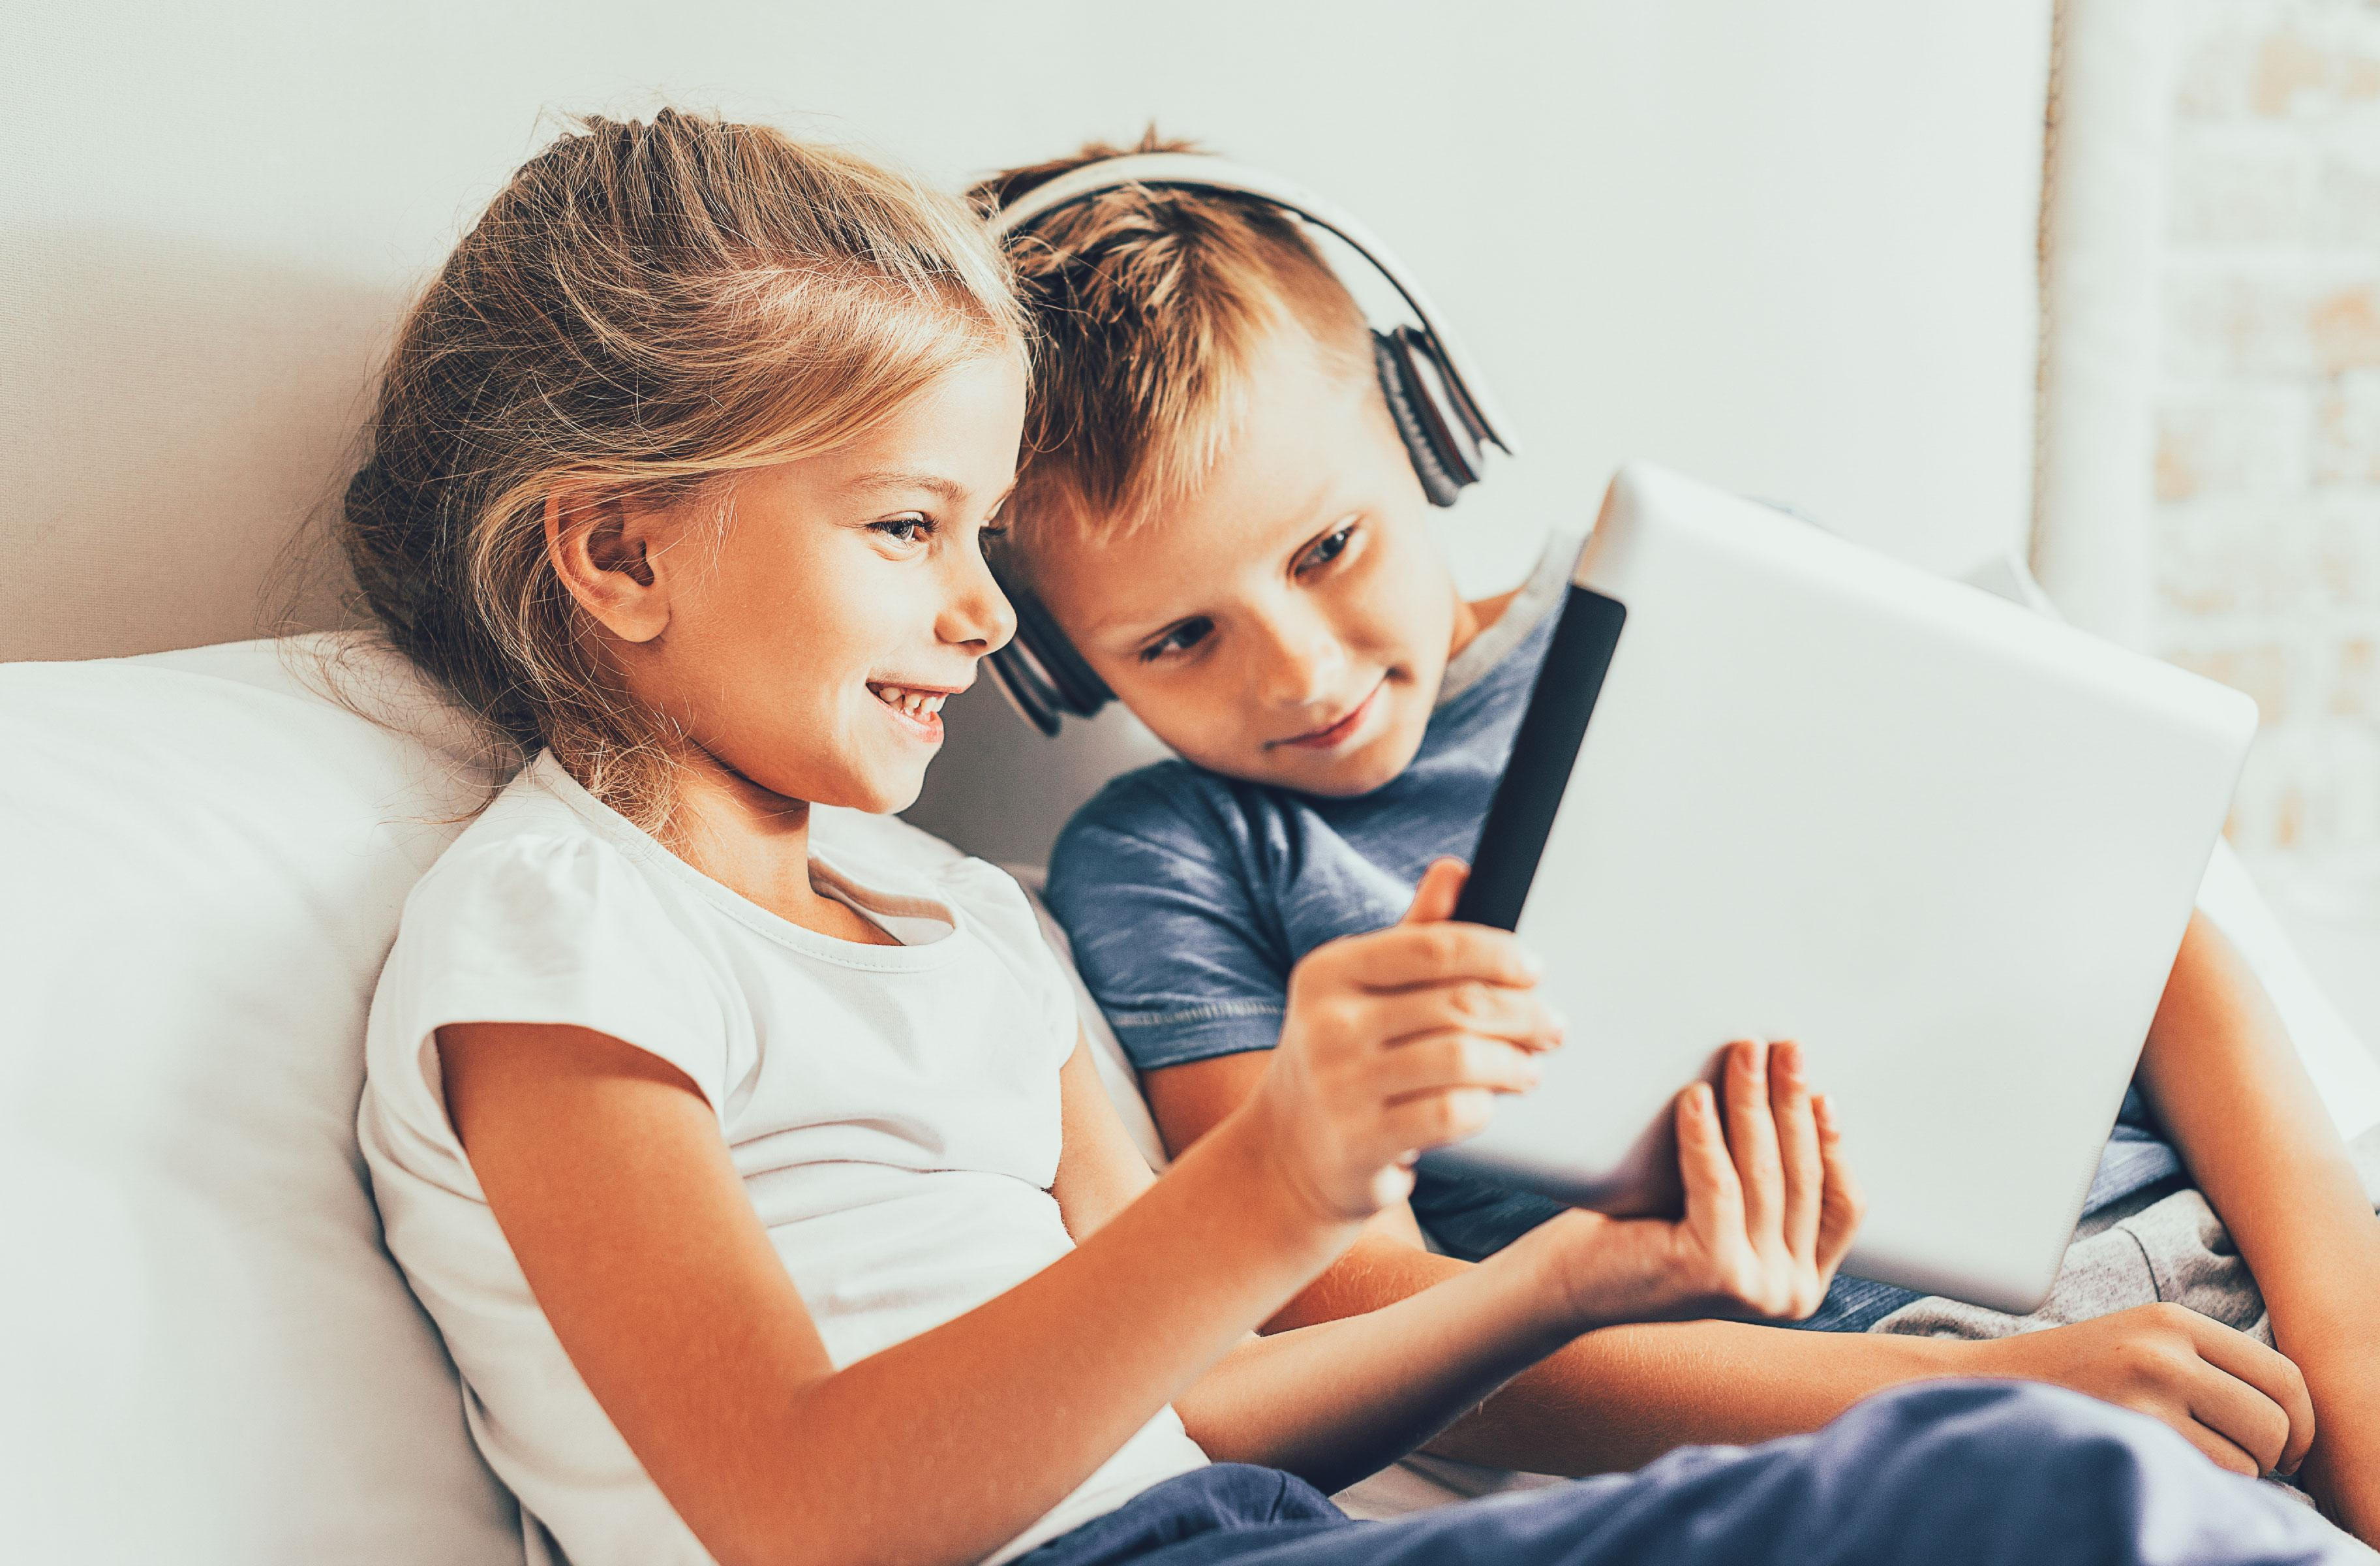 Two children's play with iPad